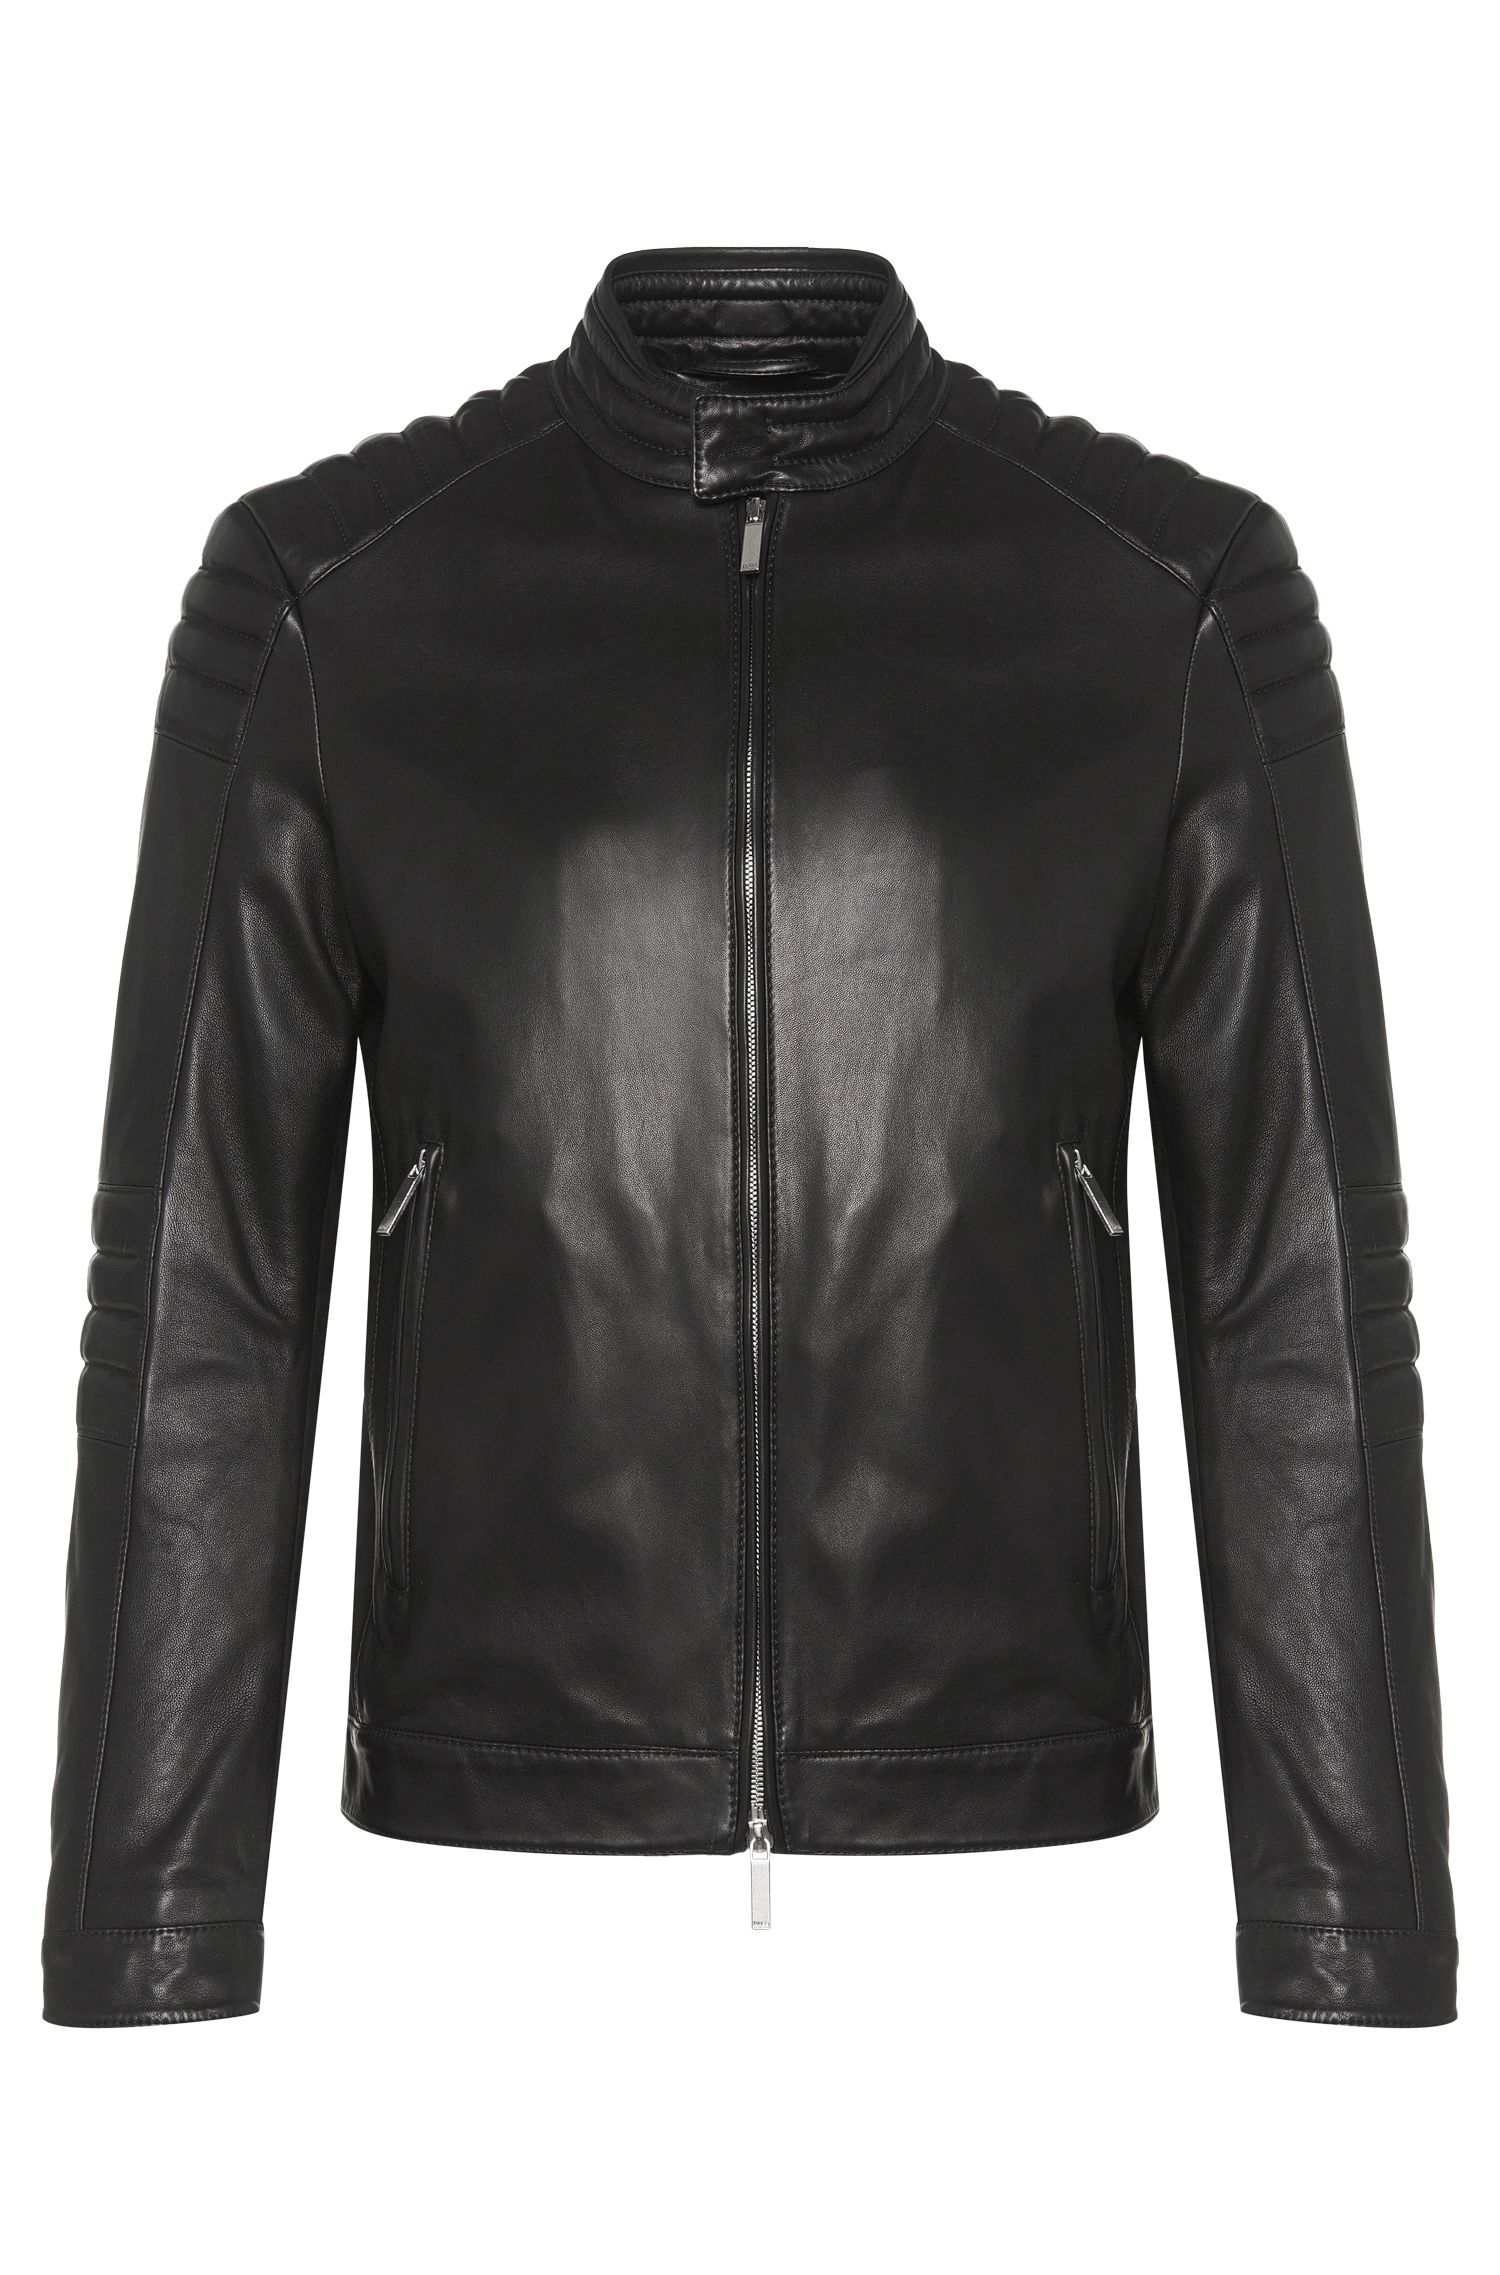 Buy cheap mercedes jacket compare men 39 s outerwear prices for Mercedes benz jacket